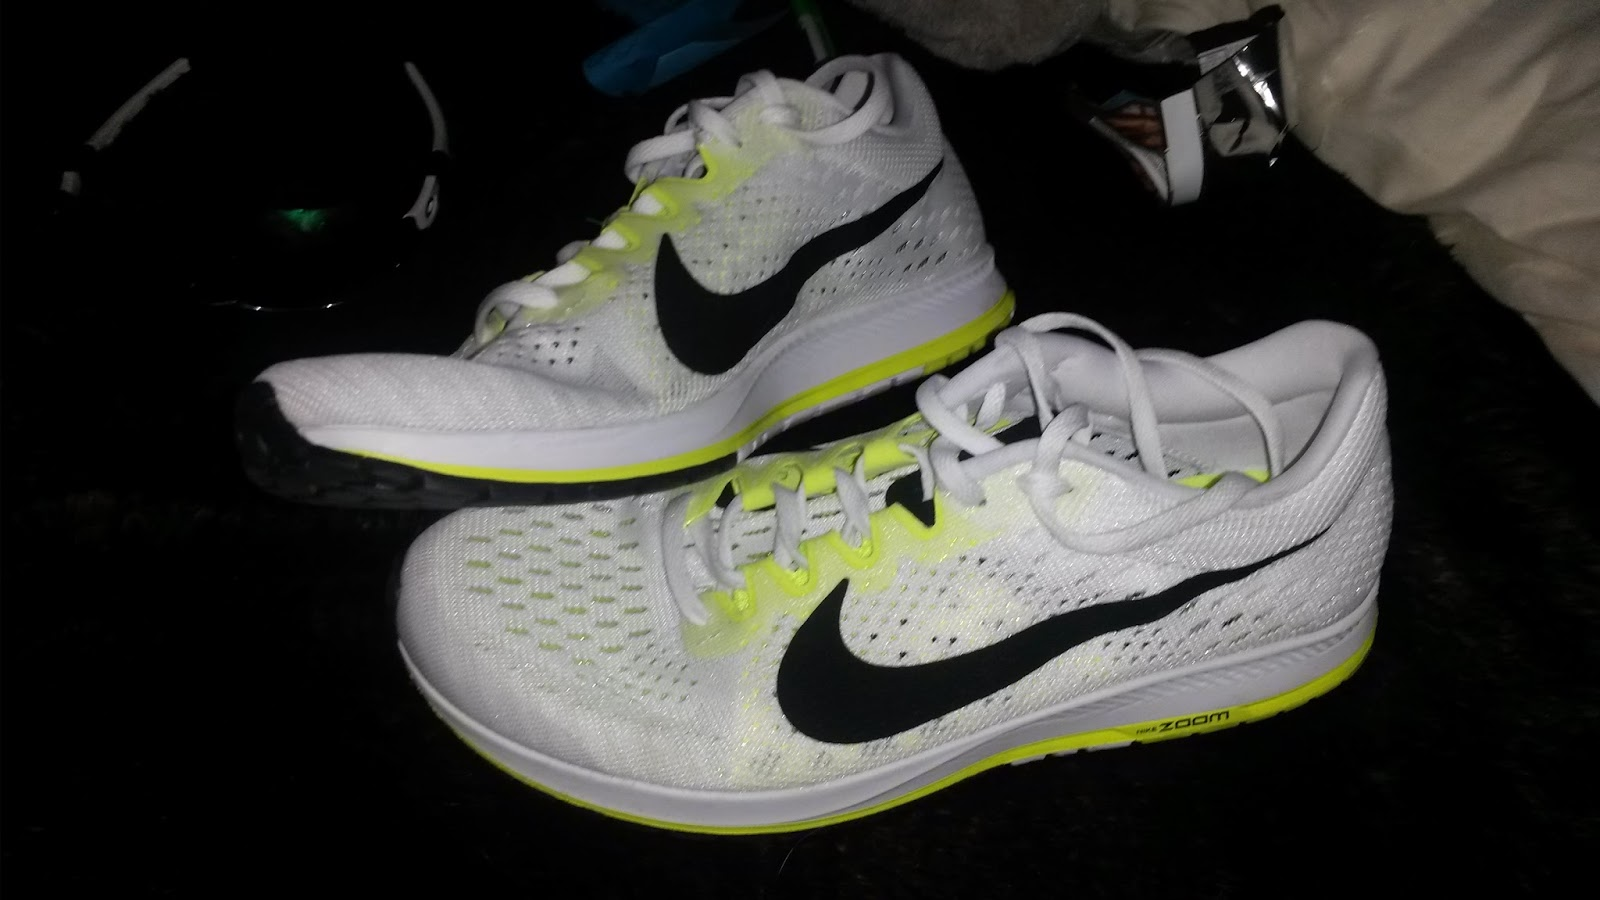 newest d58a2 b28b5 Sole, Ride, Drop and Weight The Nike Streak 6 ...